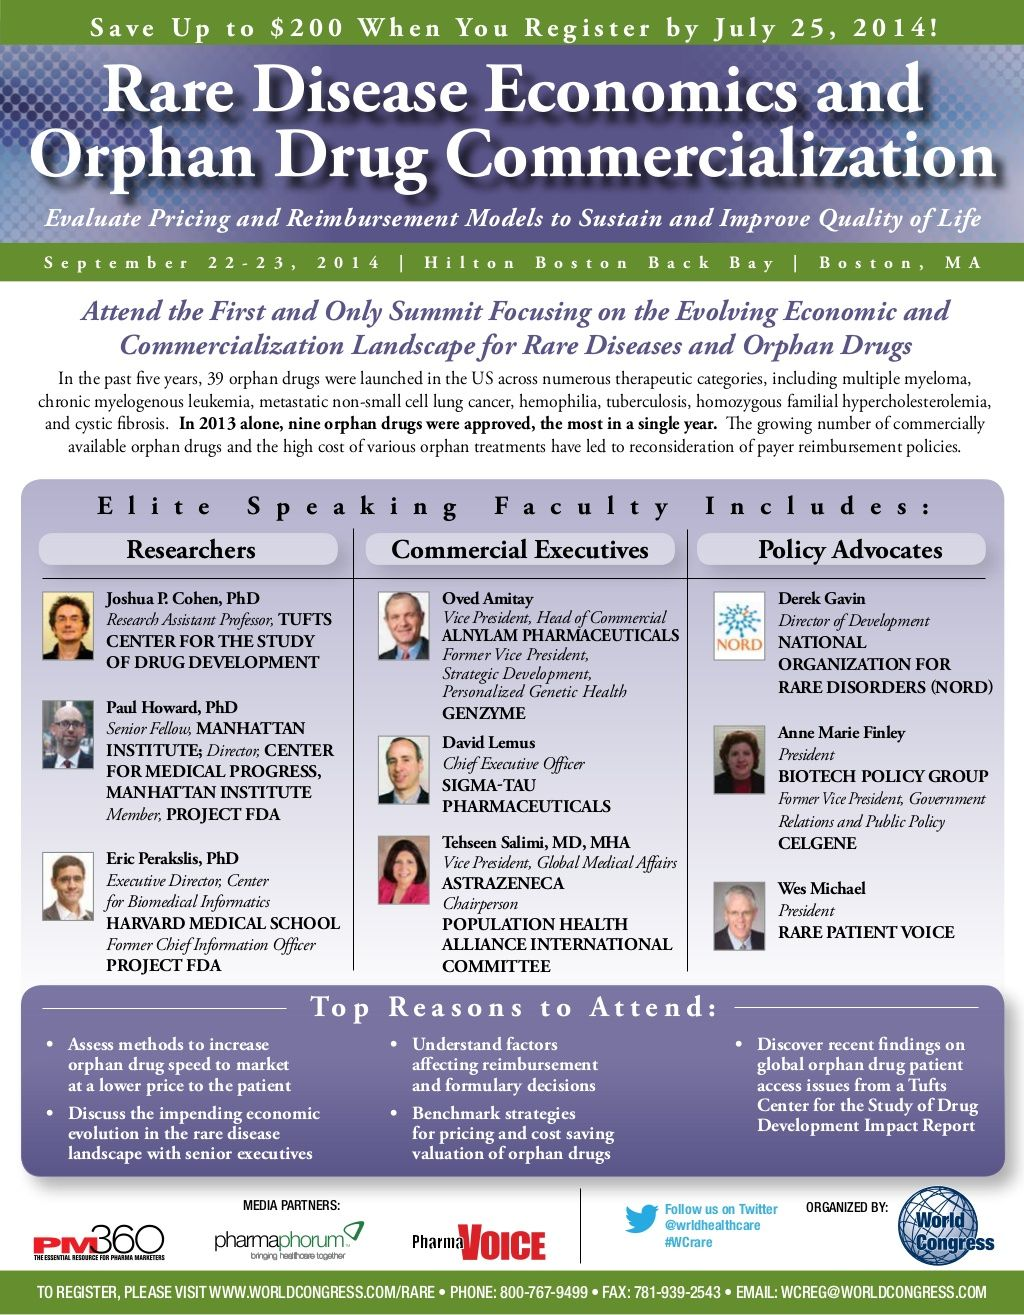 Rare Disease Economics and Orphan Drug Commercialization